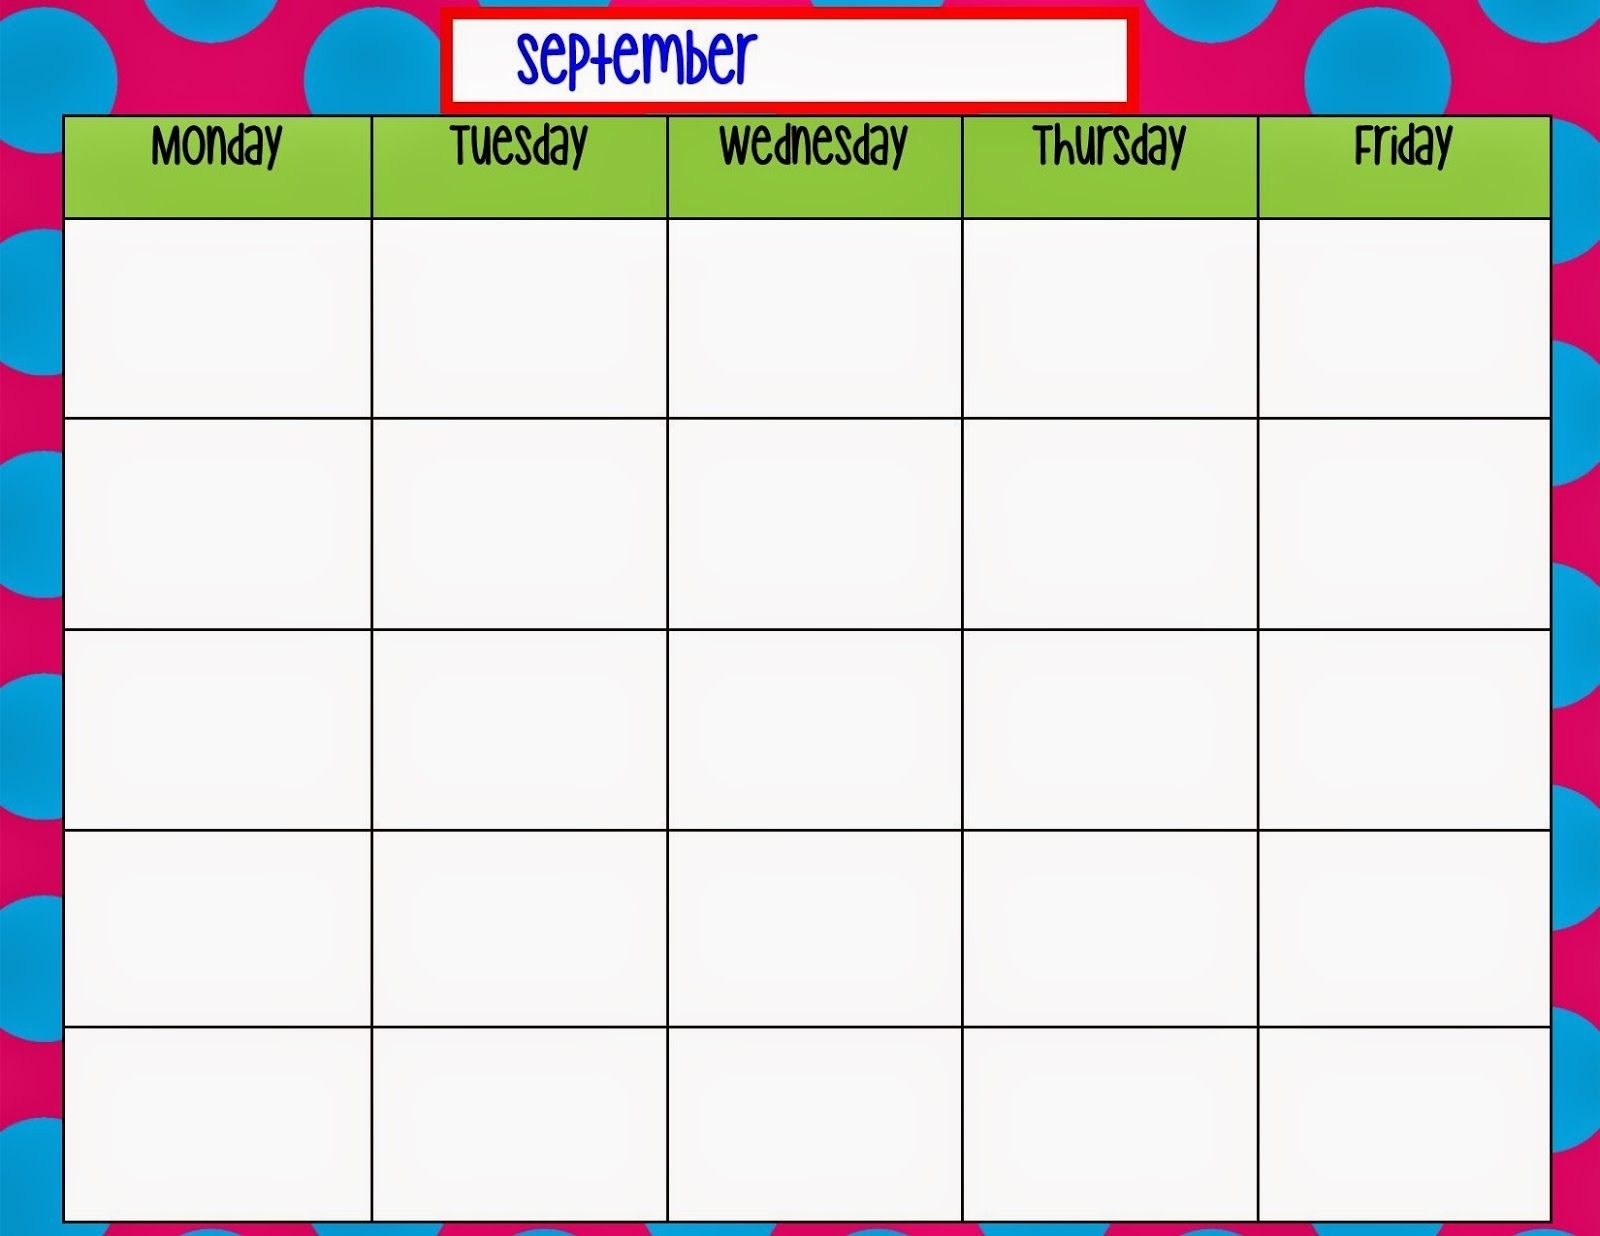 Monday Through Friday Calendar Template | Preschool | Pinterest  Weekly Schedule Monday Through Friday